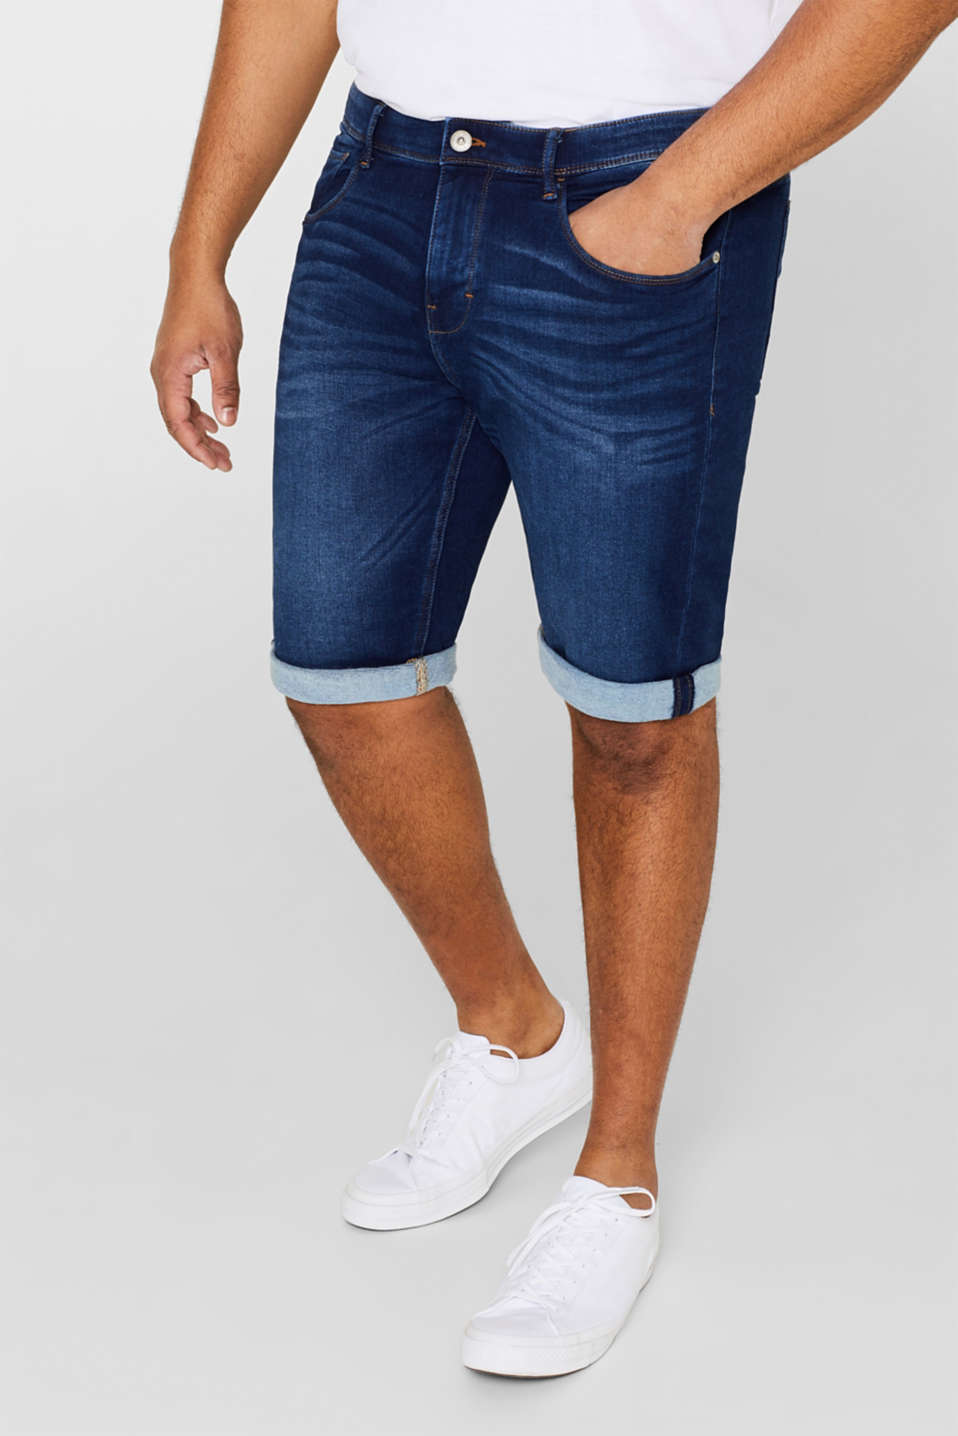 Esprit - Superstretch-Jeansshorts in Jogger-Qualität